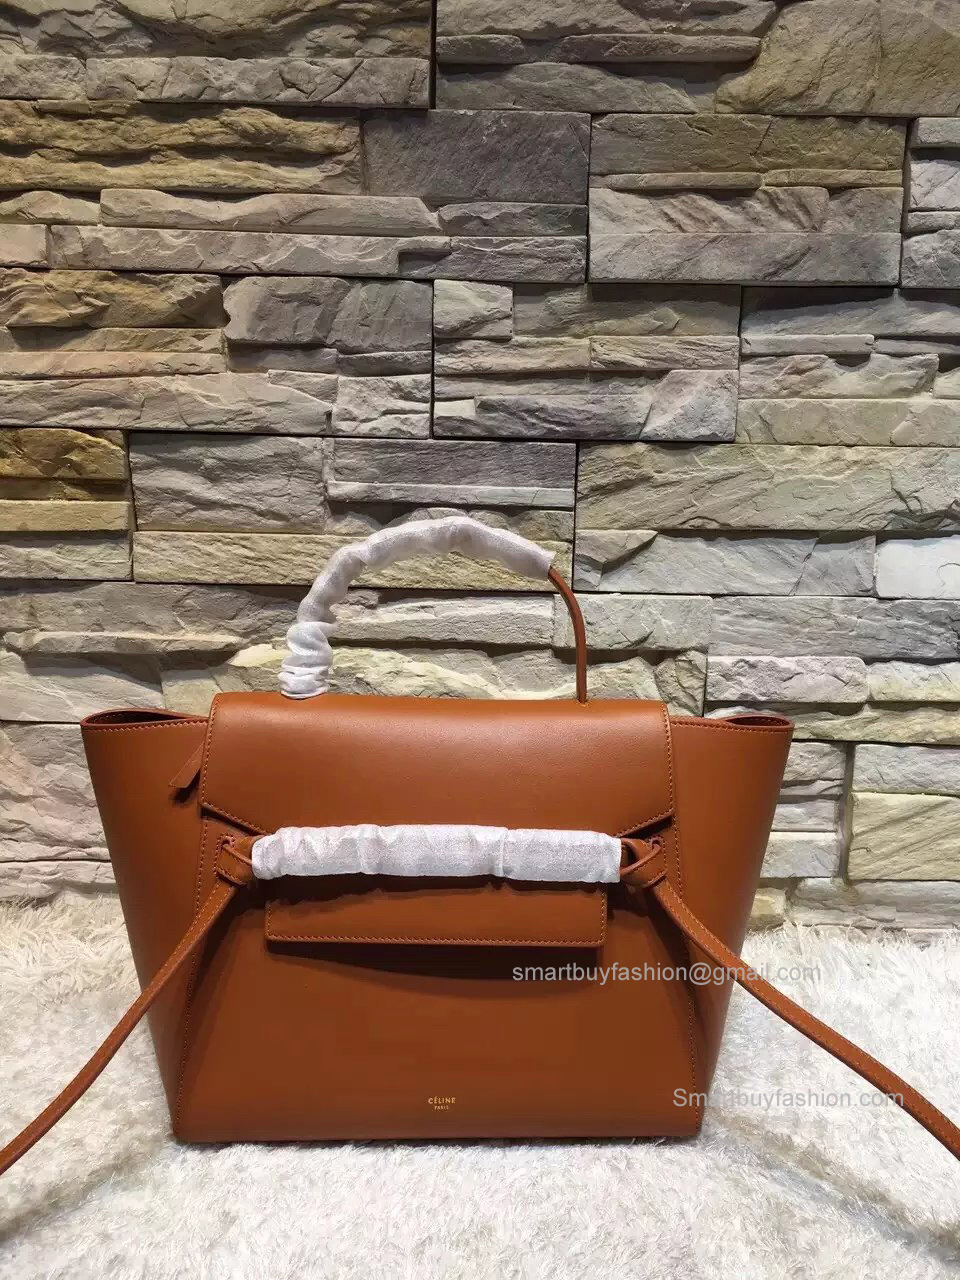 New Celine Belt Bags And Nano Bags